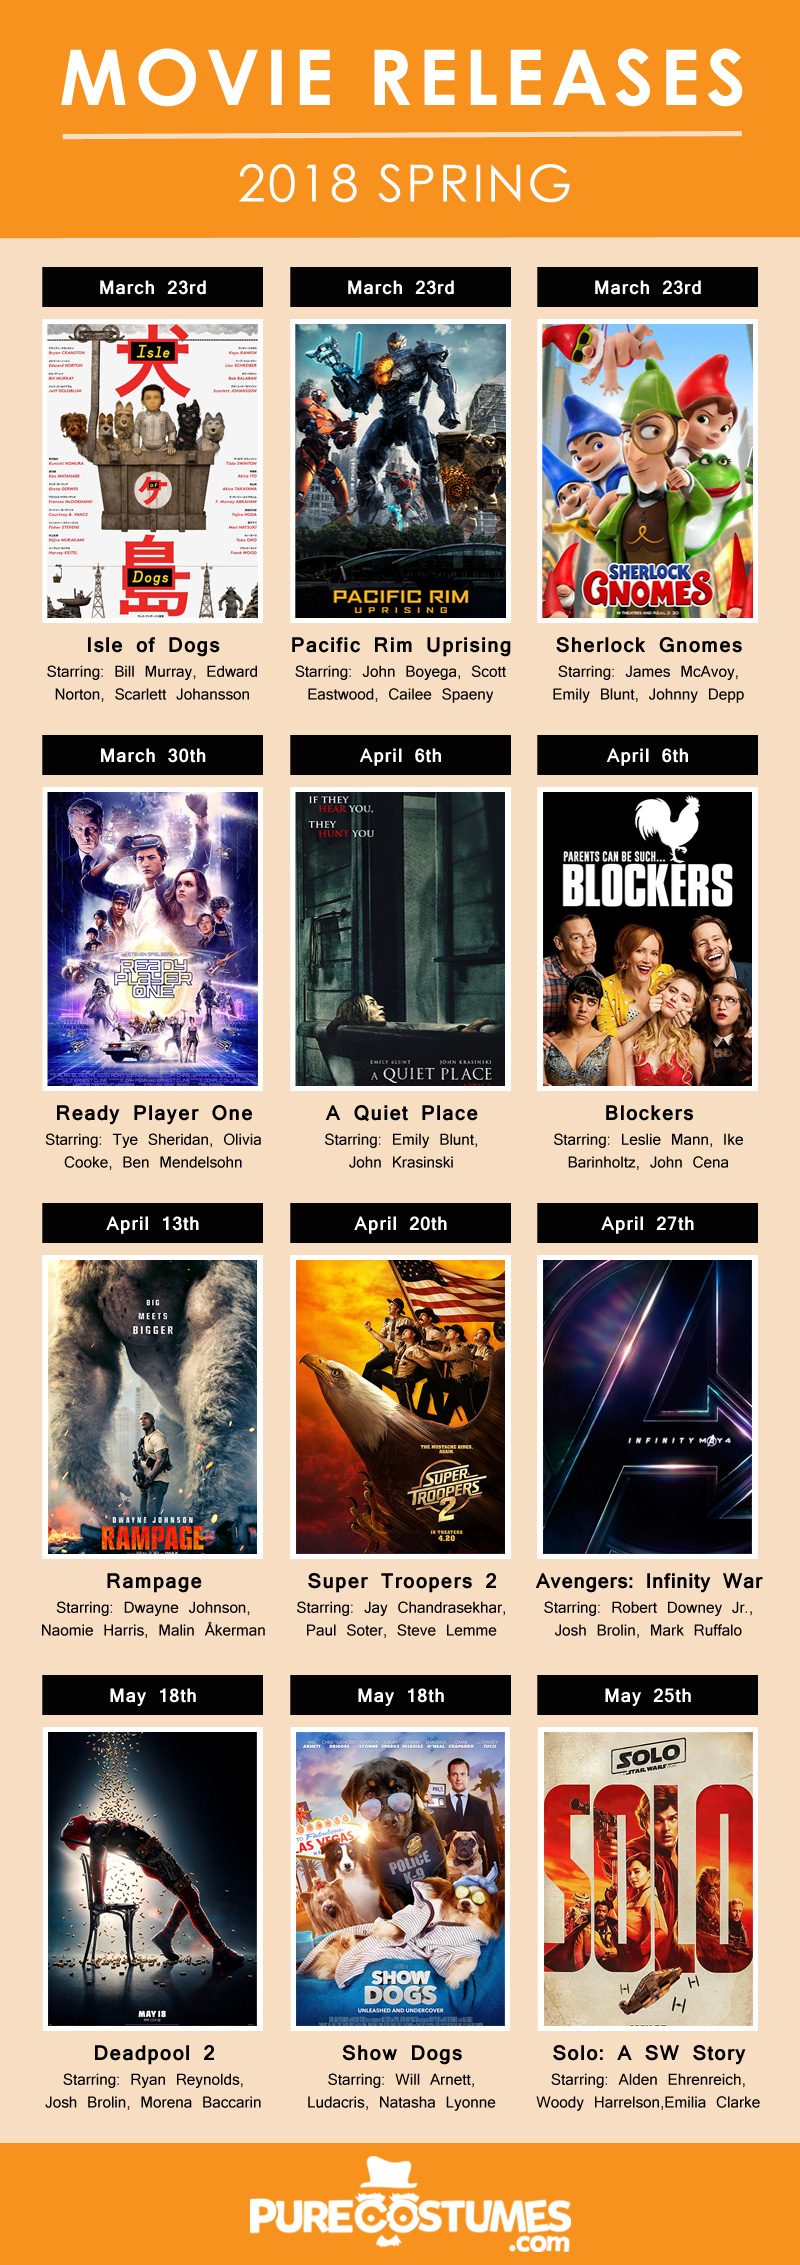 Infographic: 2018 Spring Movie Releases